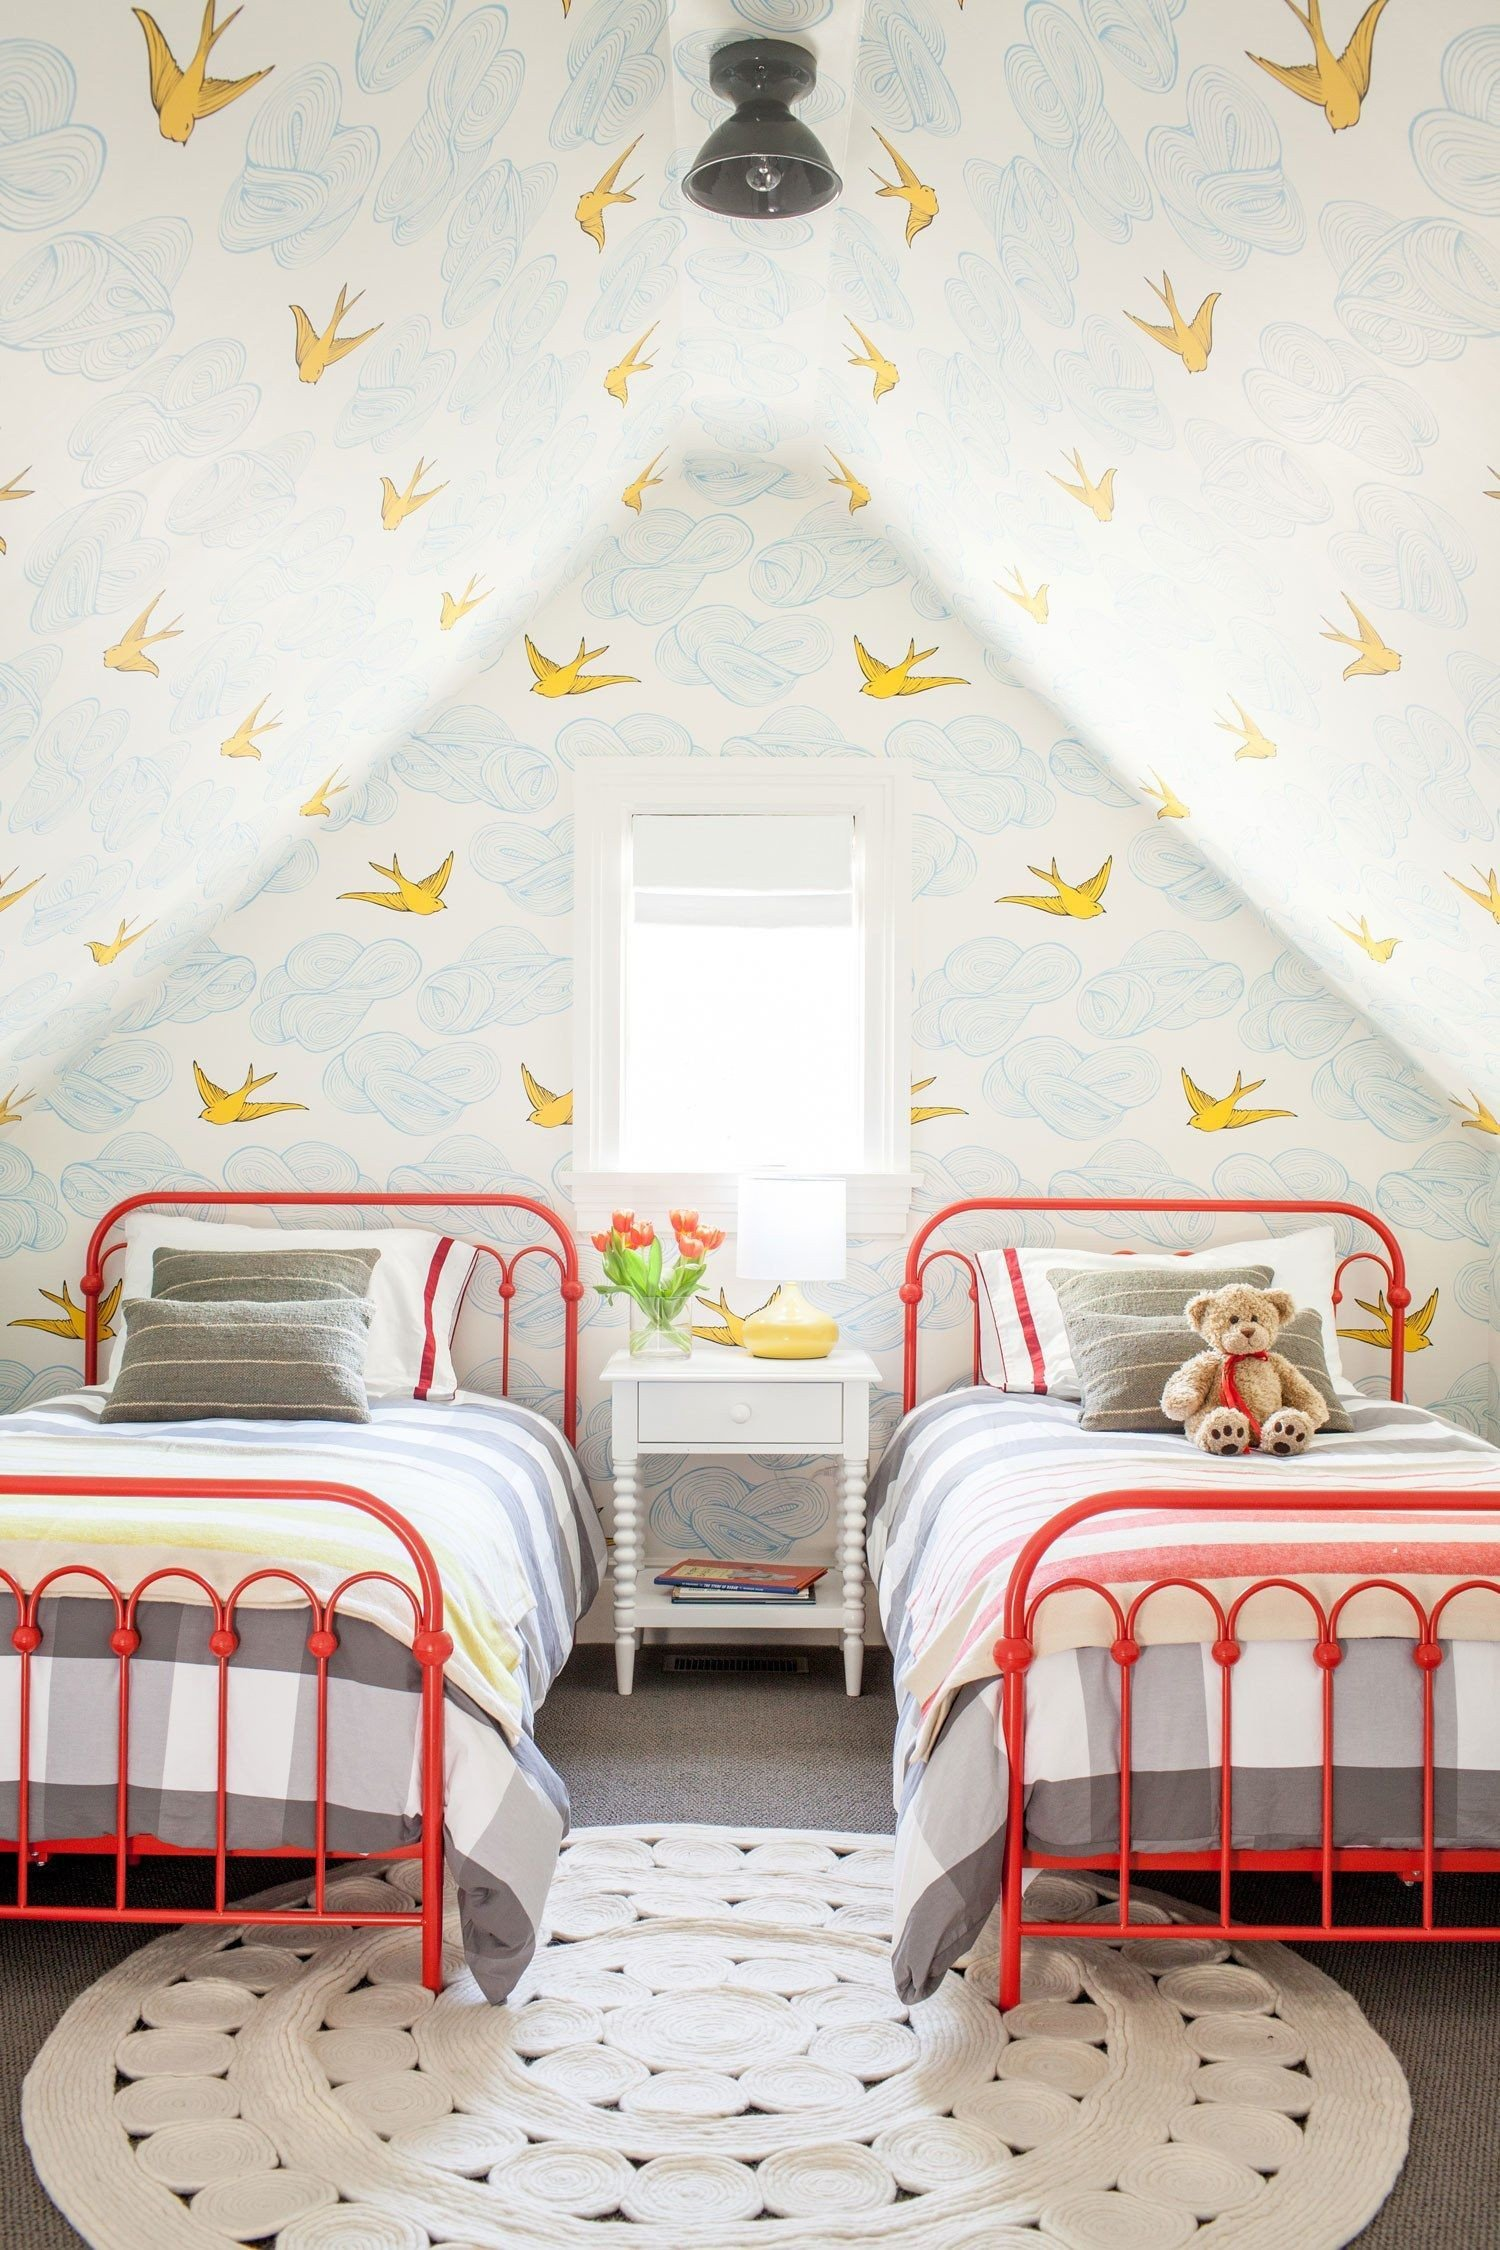 Kids Bedroom for Girls Fresh 10 Adorable Kids Room Ideas and Inspiration